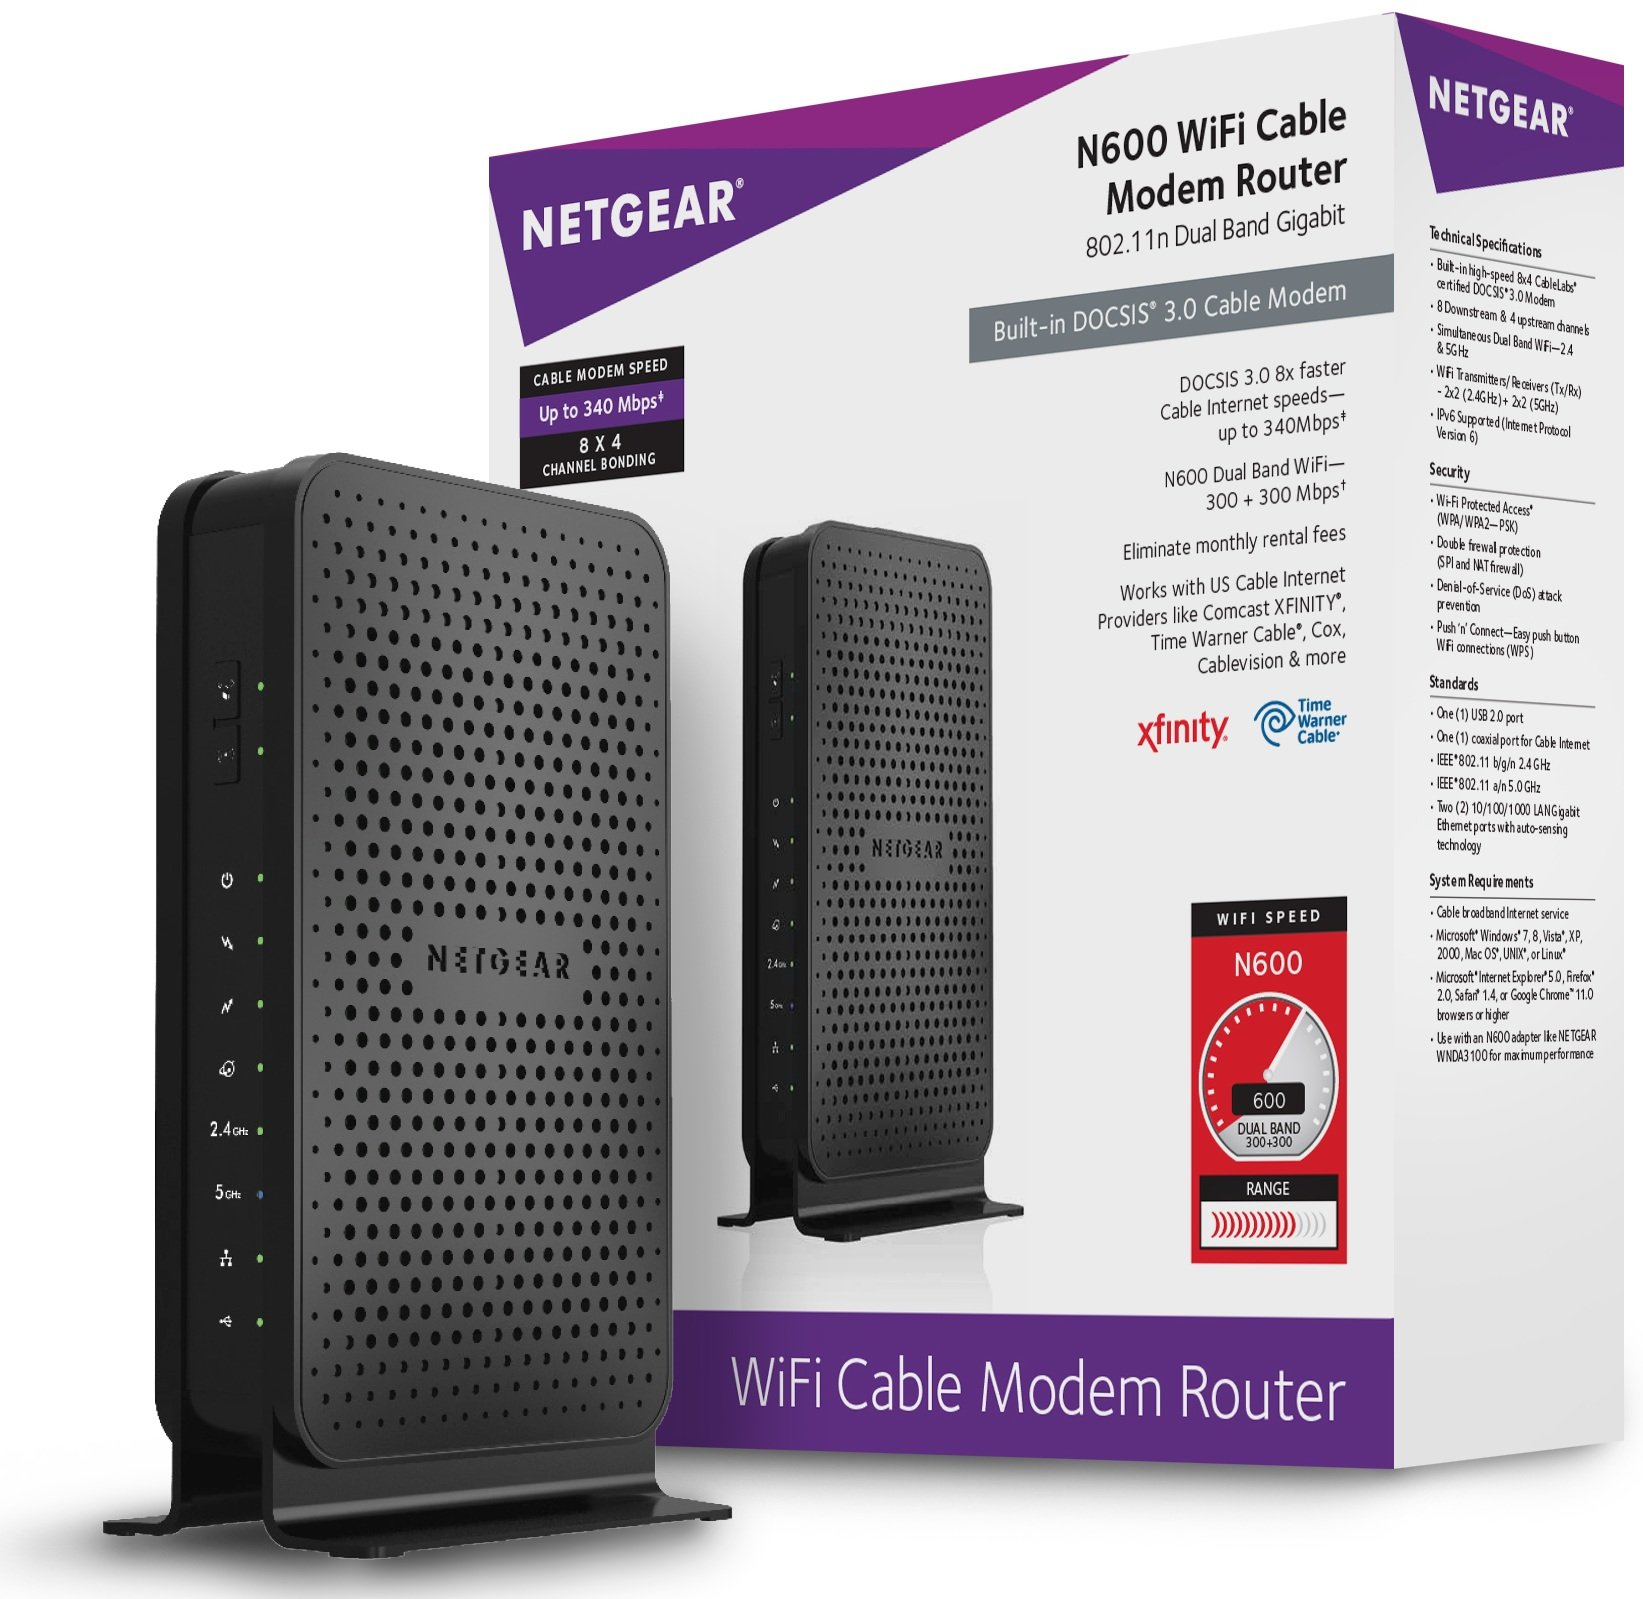 NETGEAR N600 (8x4) WiFi DOCSIS 3.0 Cable Modem Router (C3700) Certified for Xfinity from Comcast, Spectrum, Cox, Spectrum & more by NETGEAR